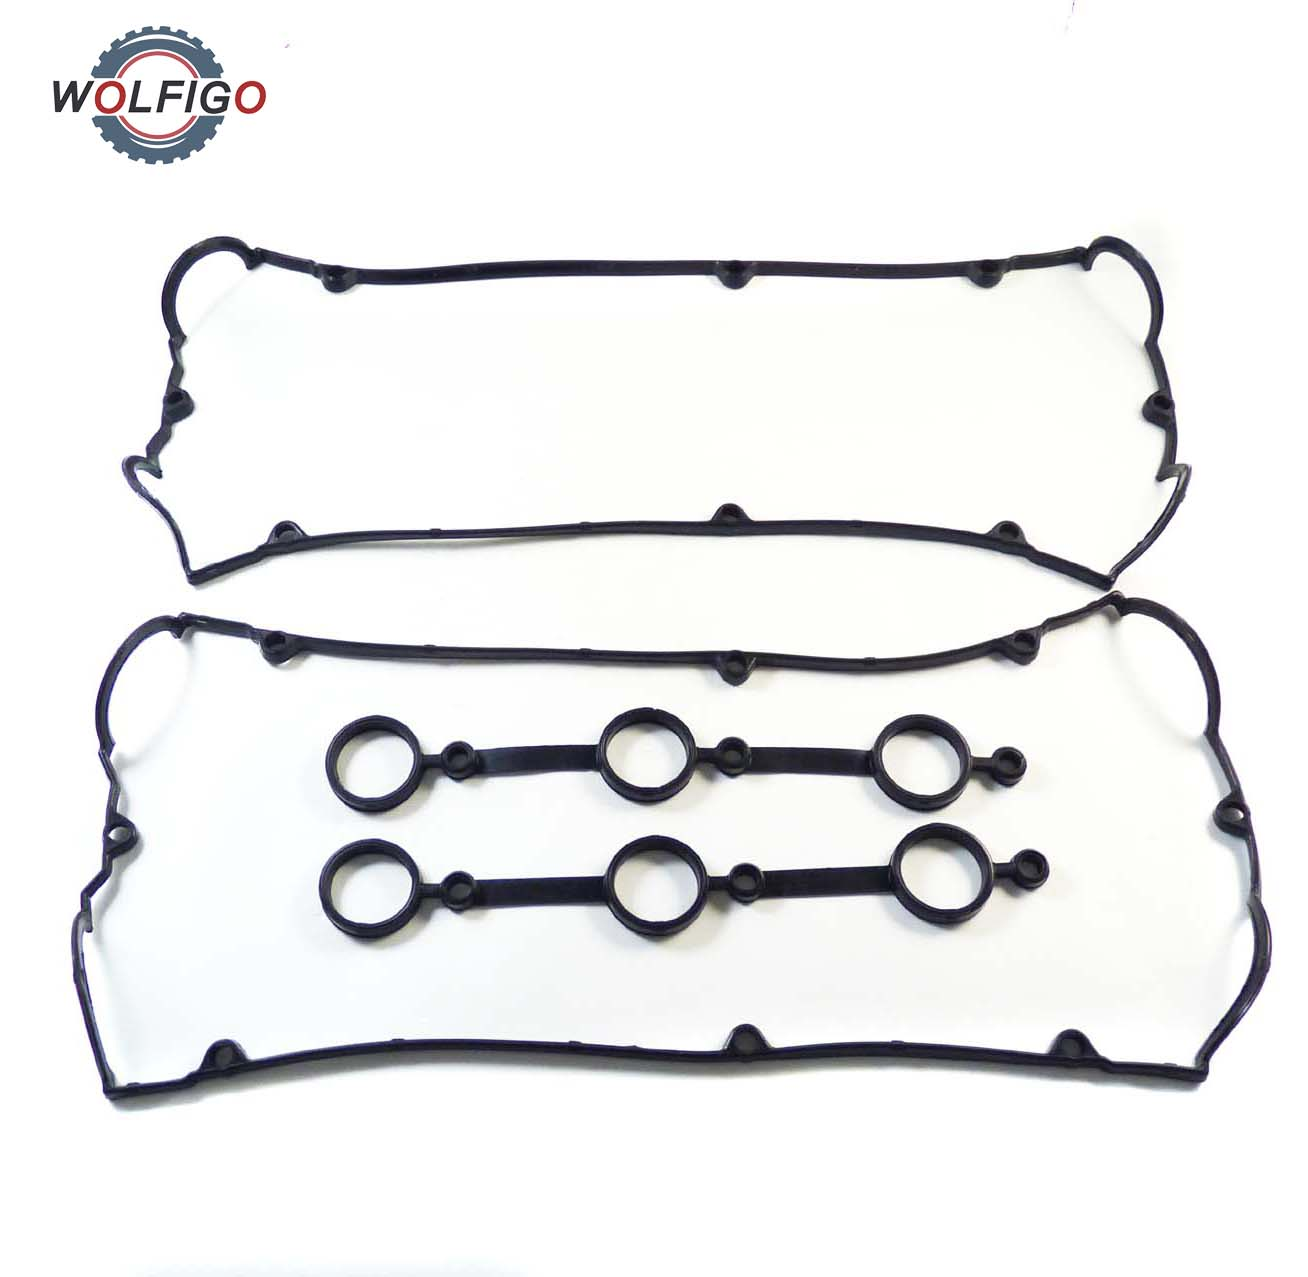 Wolfigo Valve Cover Gasket Set For Hyundai